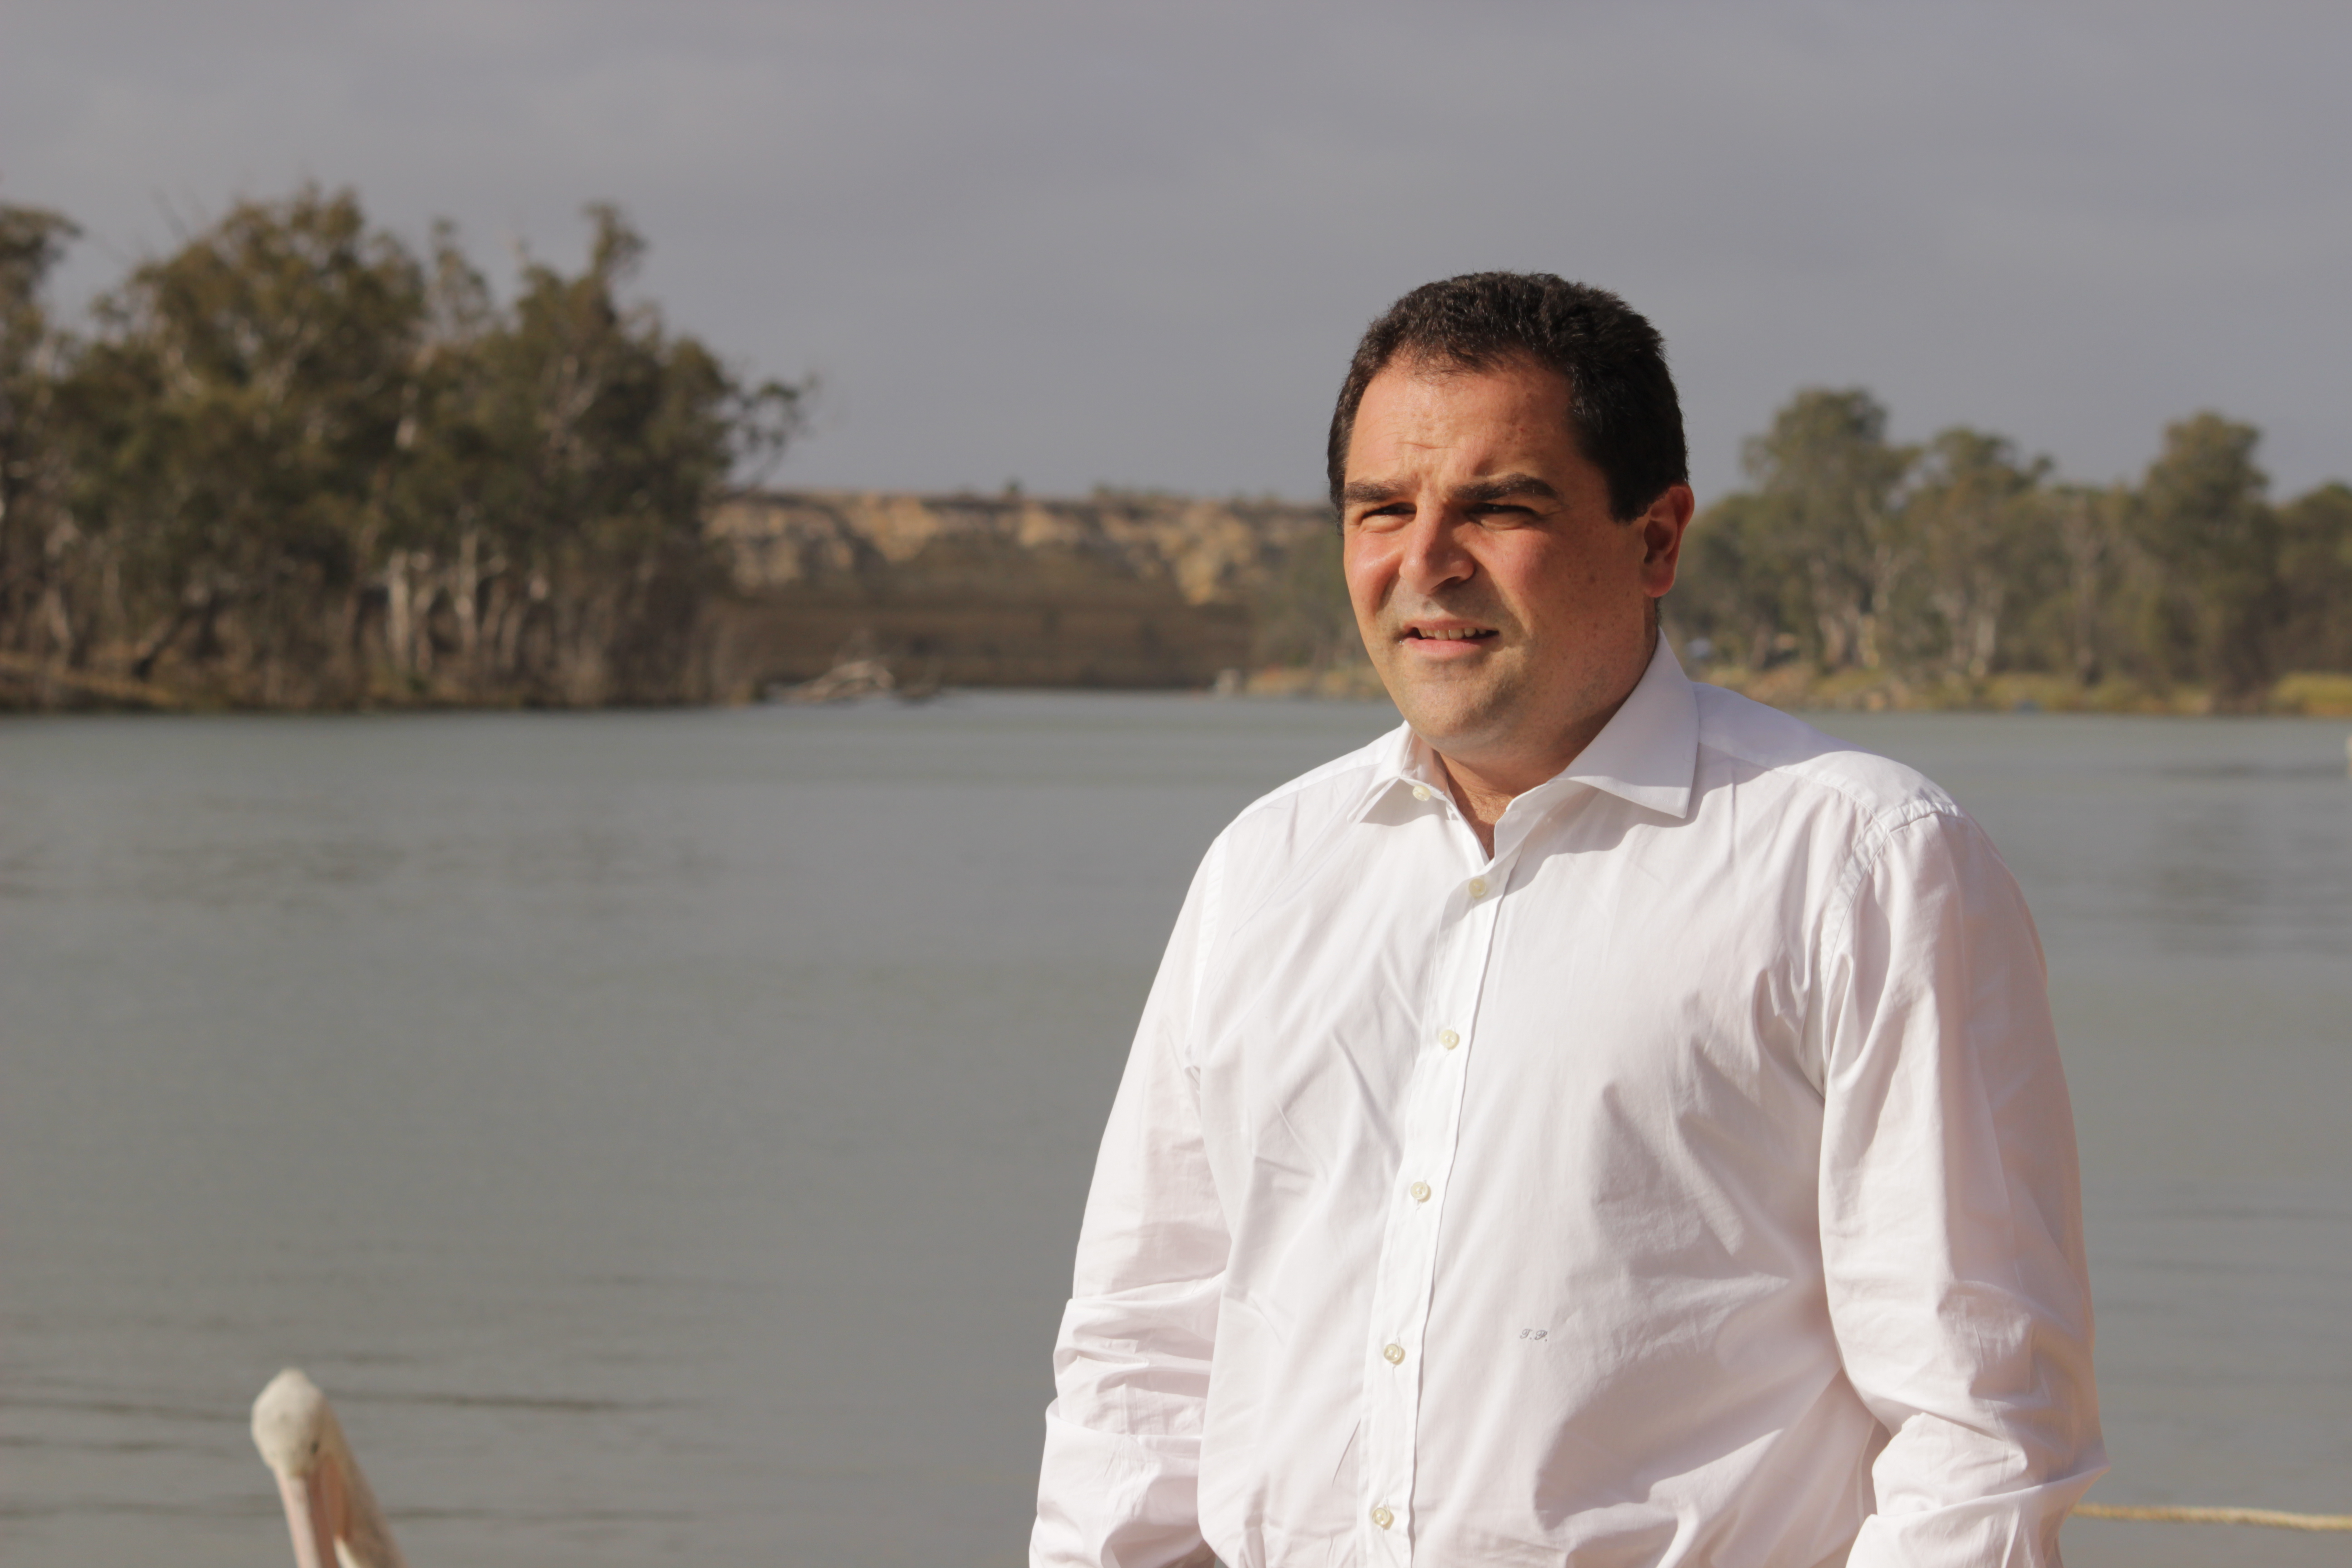 PASIN WELCOMES ACCC WATER INQUIRY